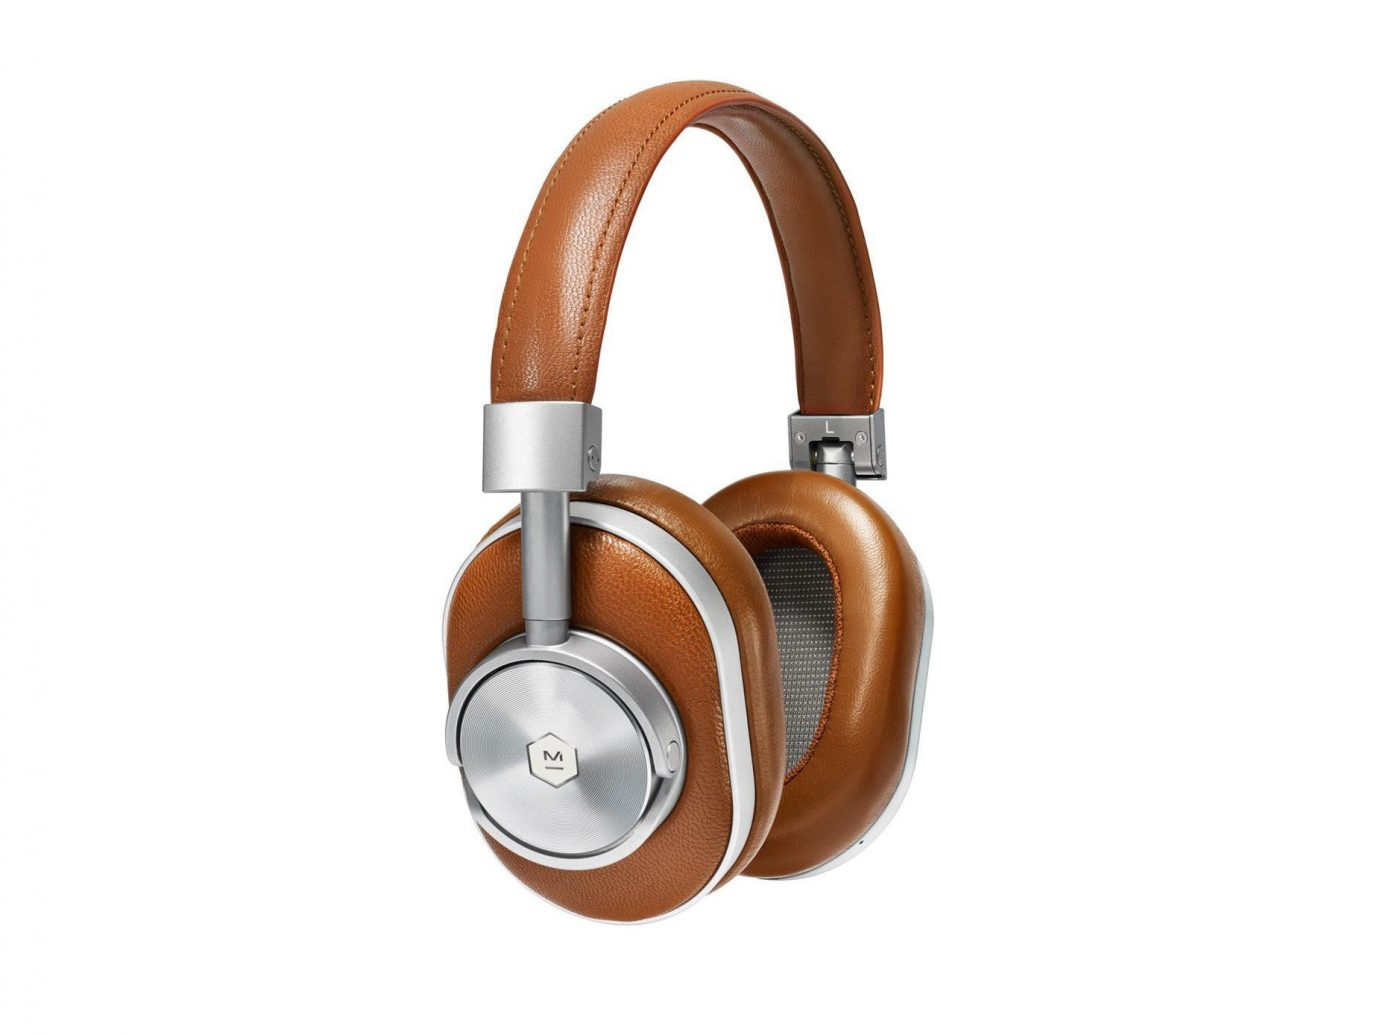 Style + Design headphones audio equipment gadget audio technology electronic device ear